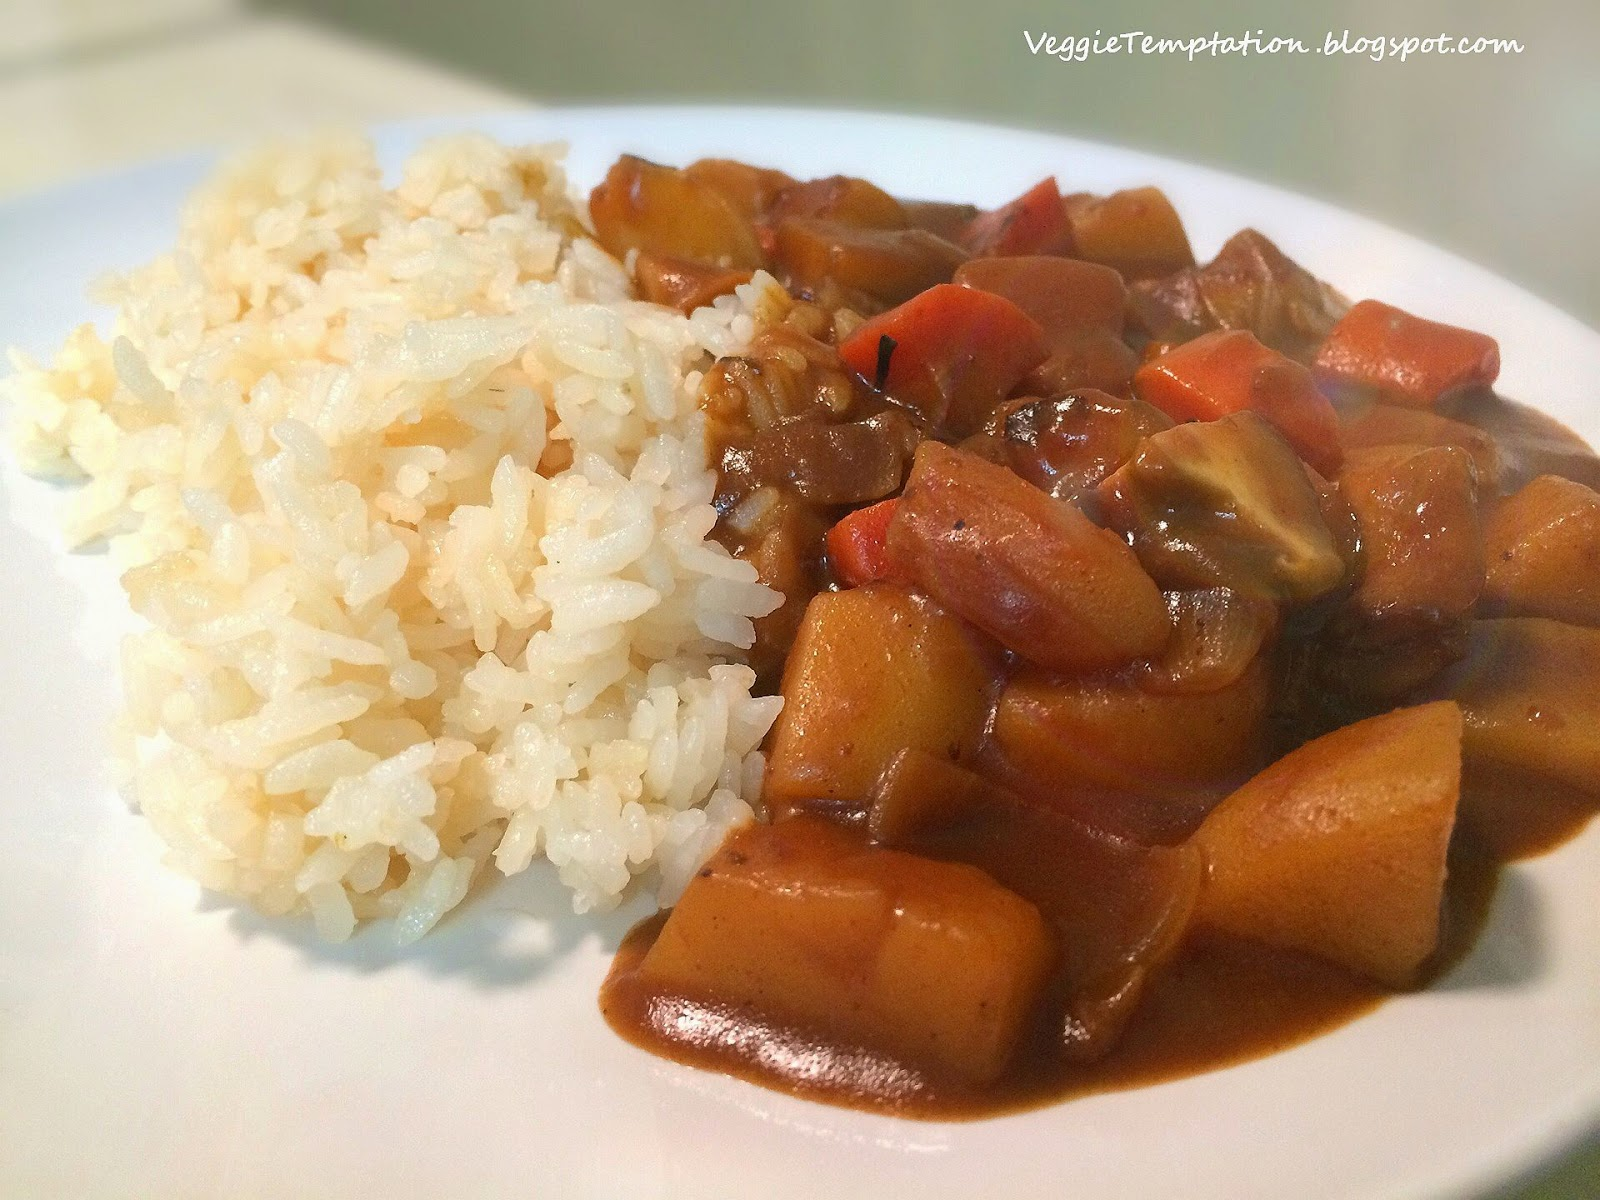 Veggie Temptation: 'Cheater' Japanese Curry Rice